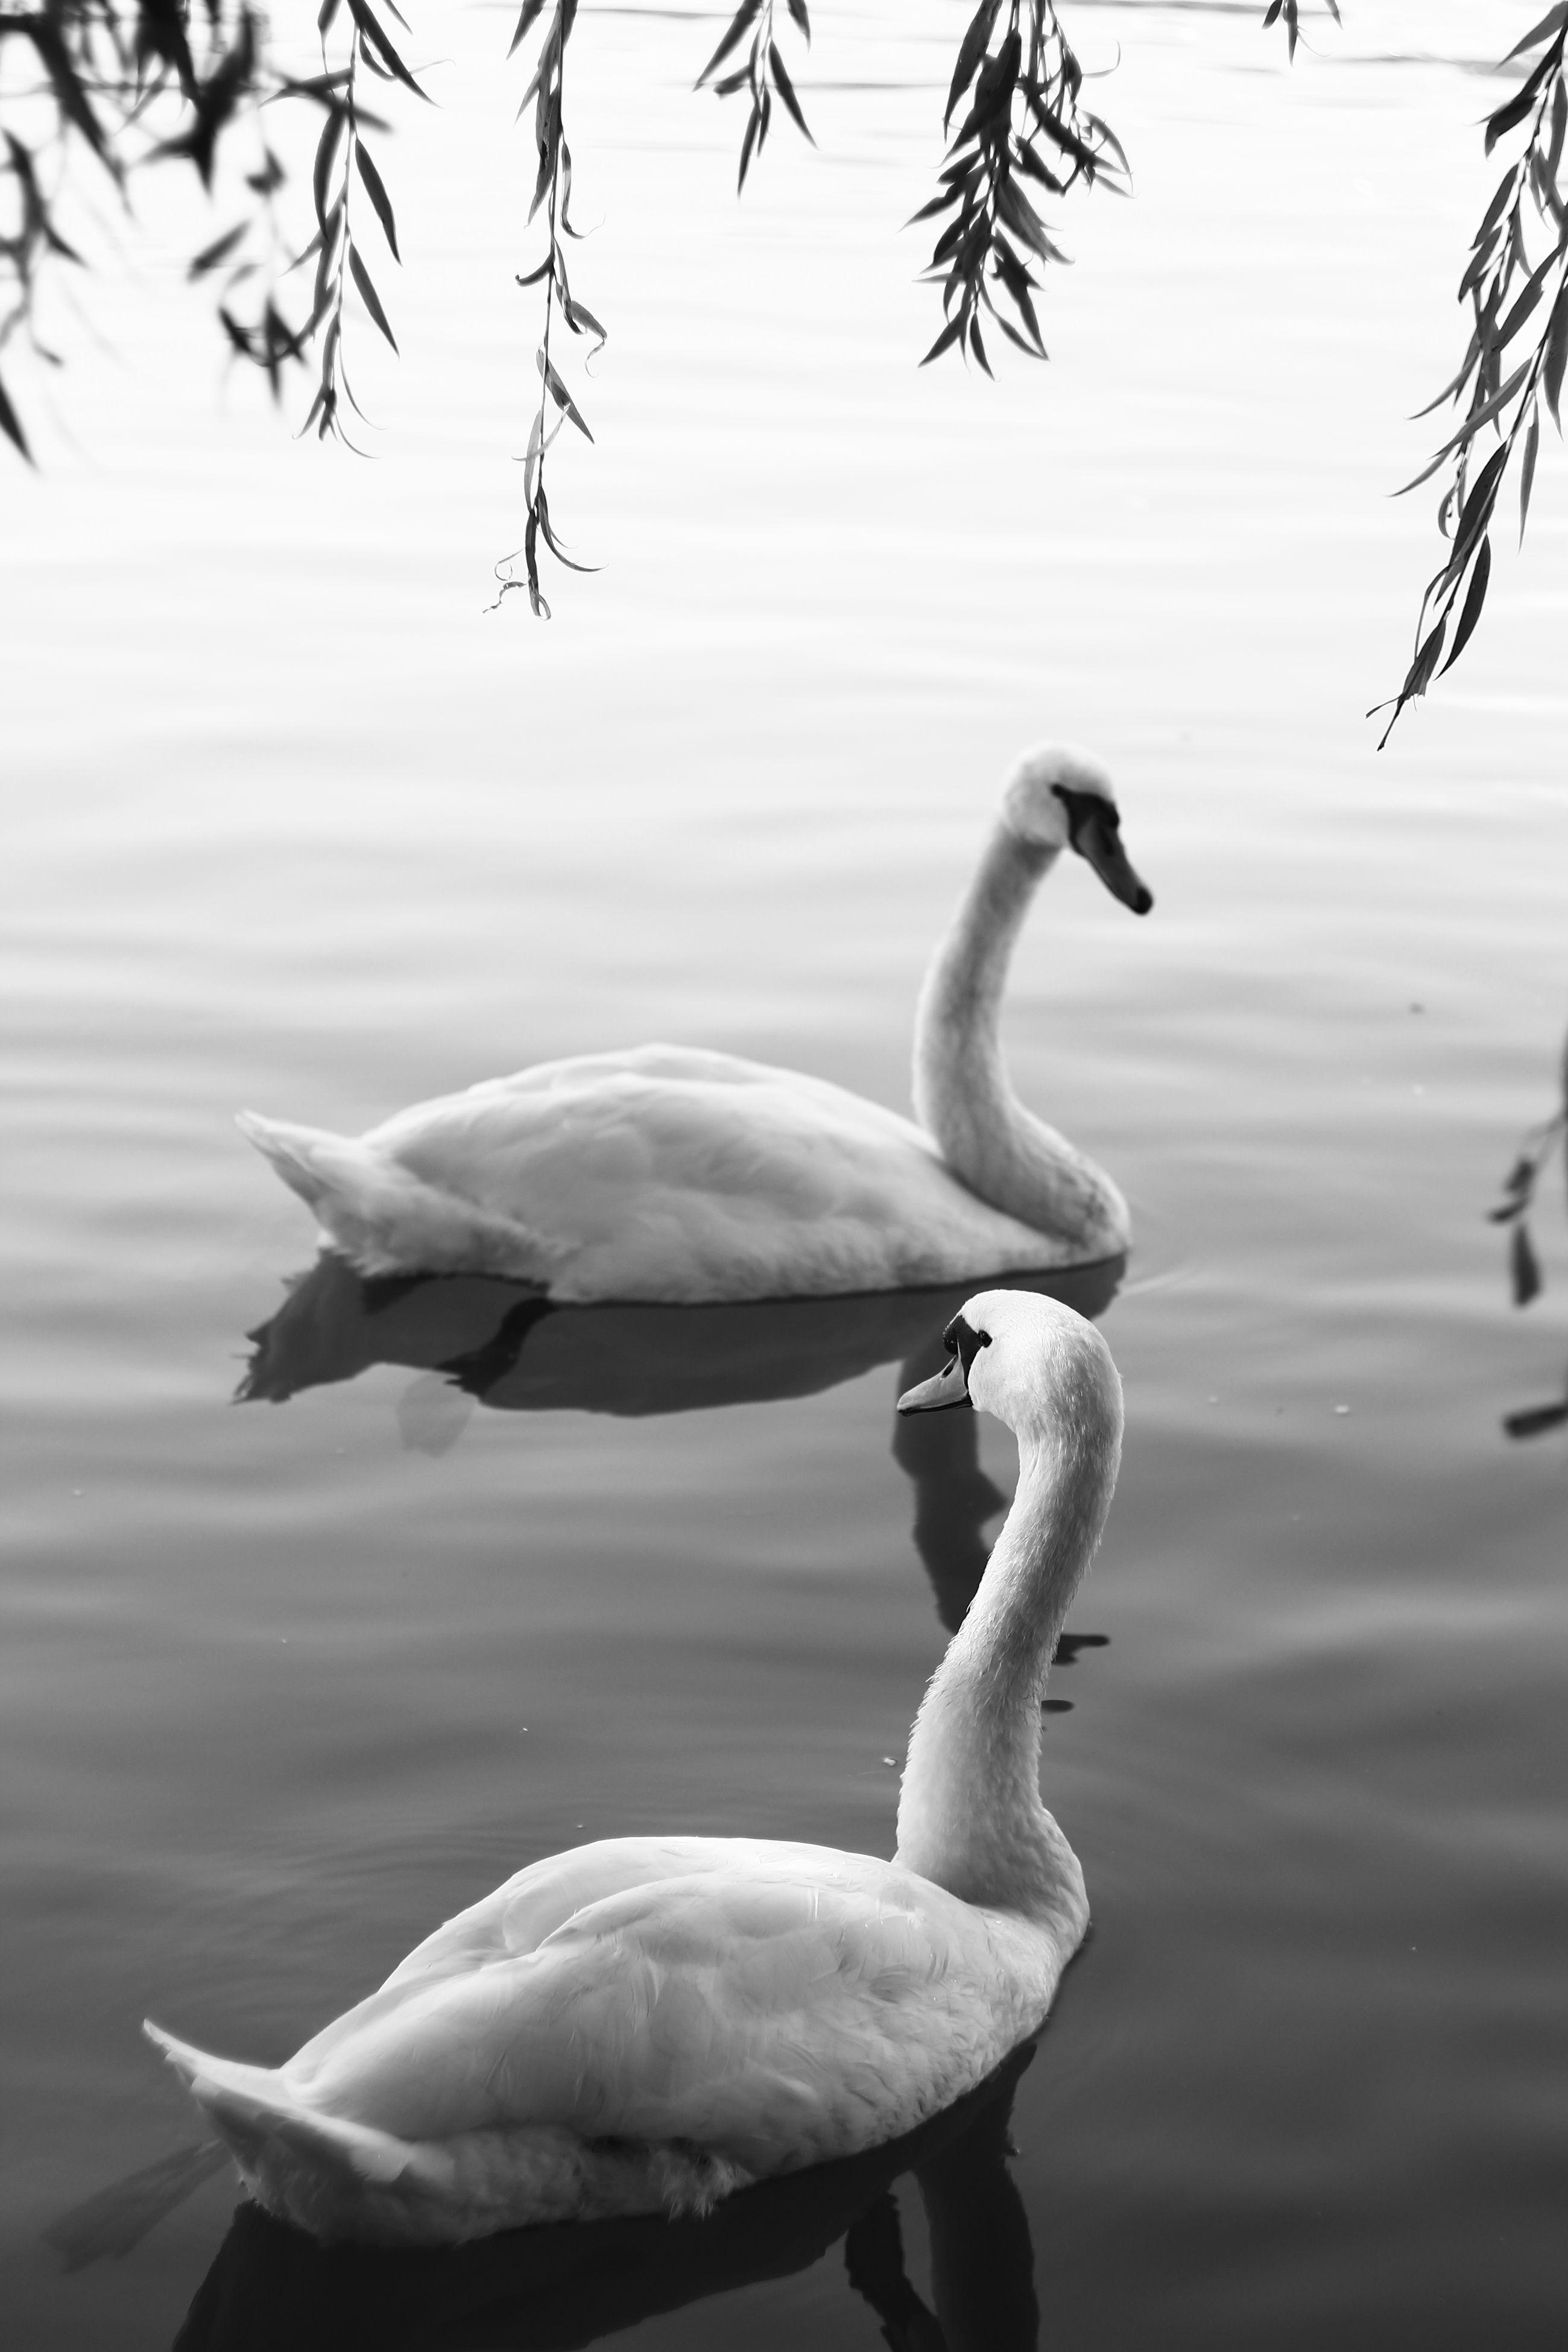 animals in the wild, animal themes, bird, lake, animal wildlife, water, nature, one animal, no people, water bird, reflection, outdoors, day, swimming, swan, beauty in nature, sky, close-up